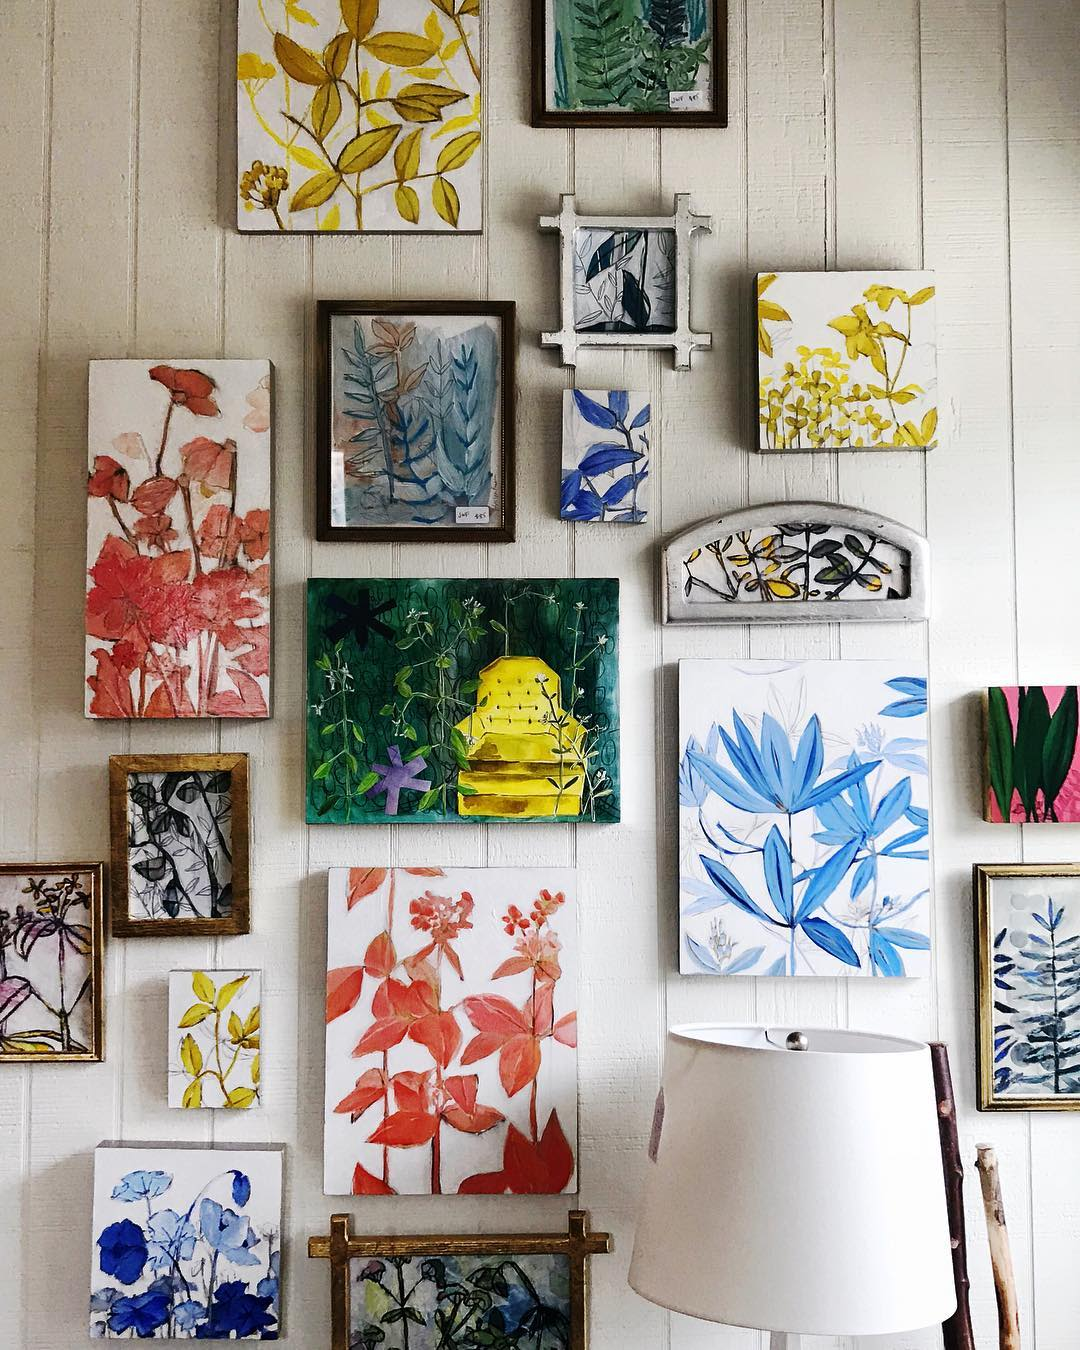 Multicolored floral and botanical paintings